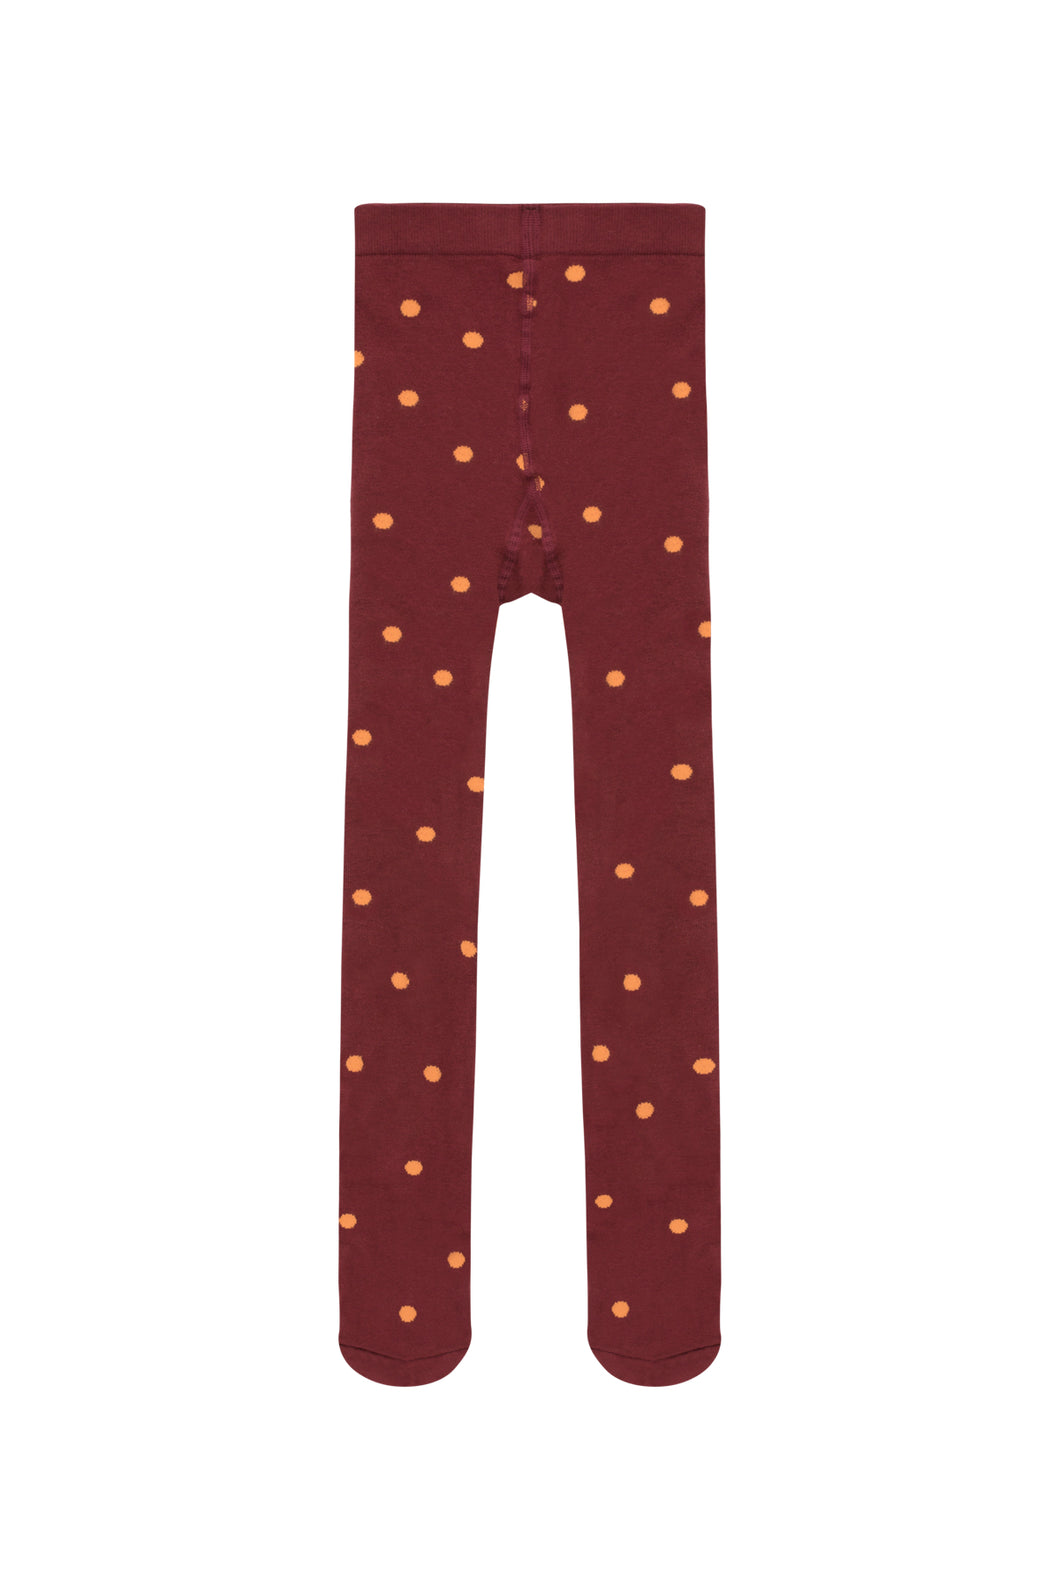 tinycottons DOTS Tights